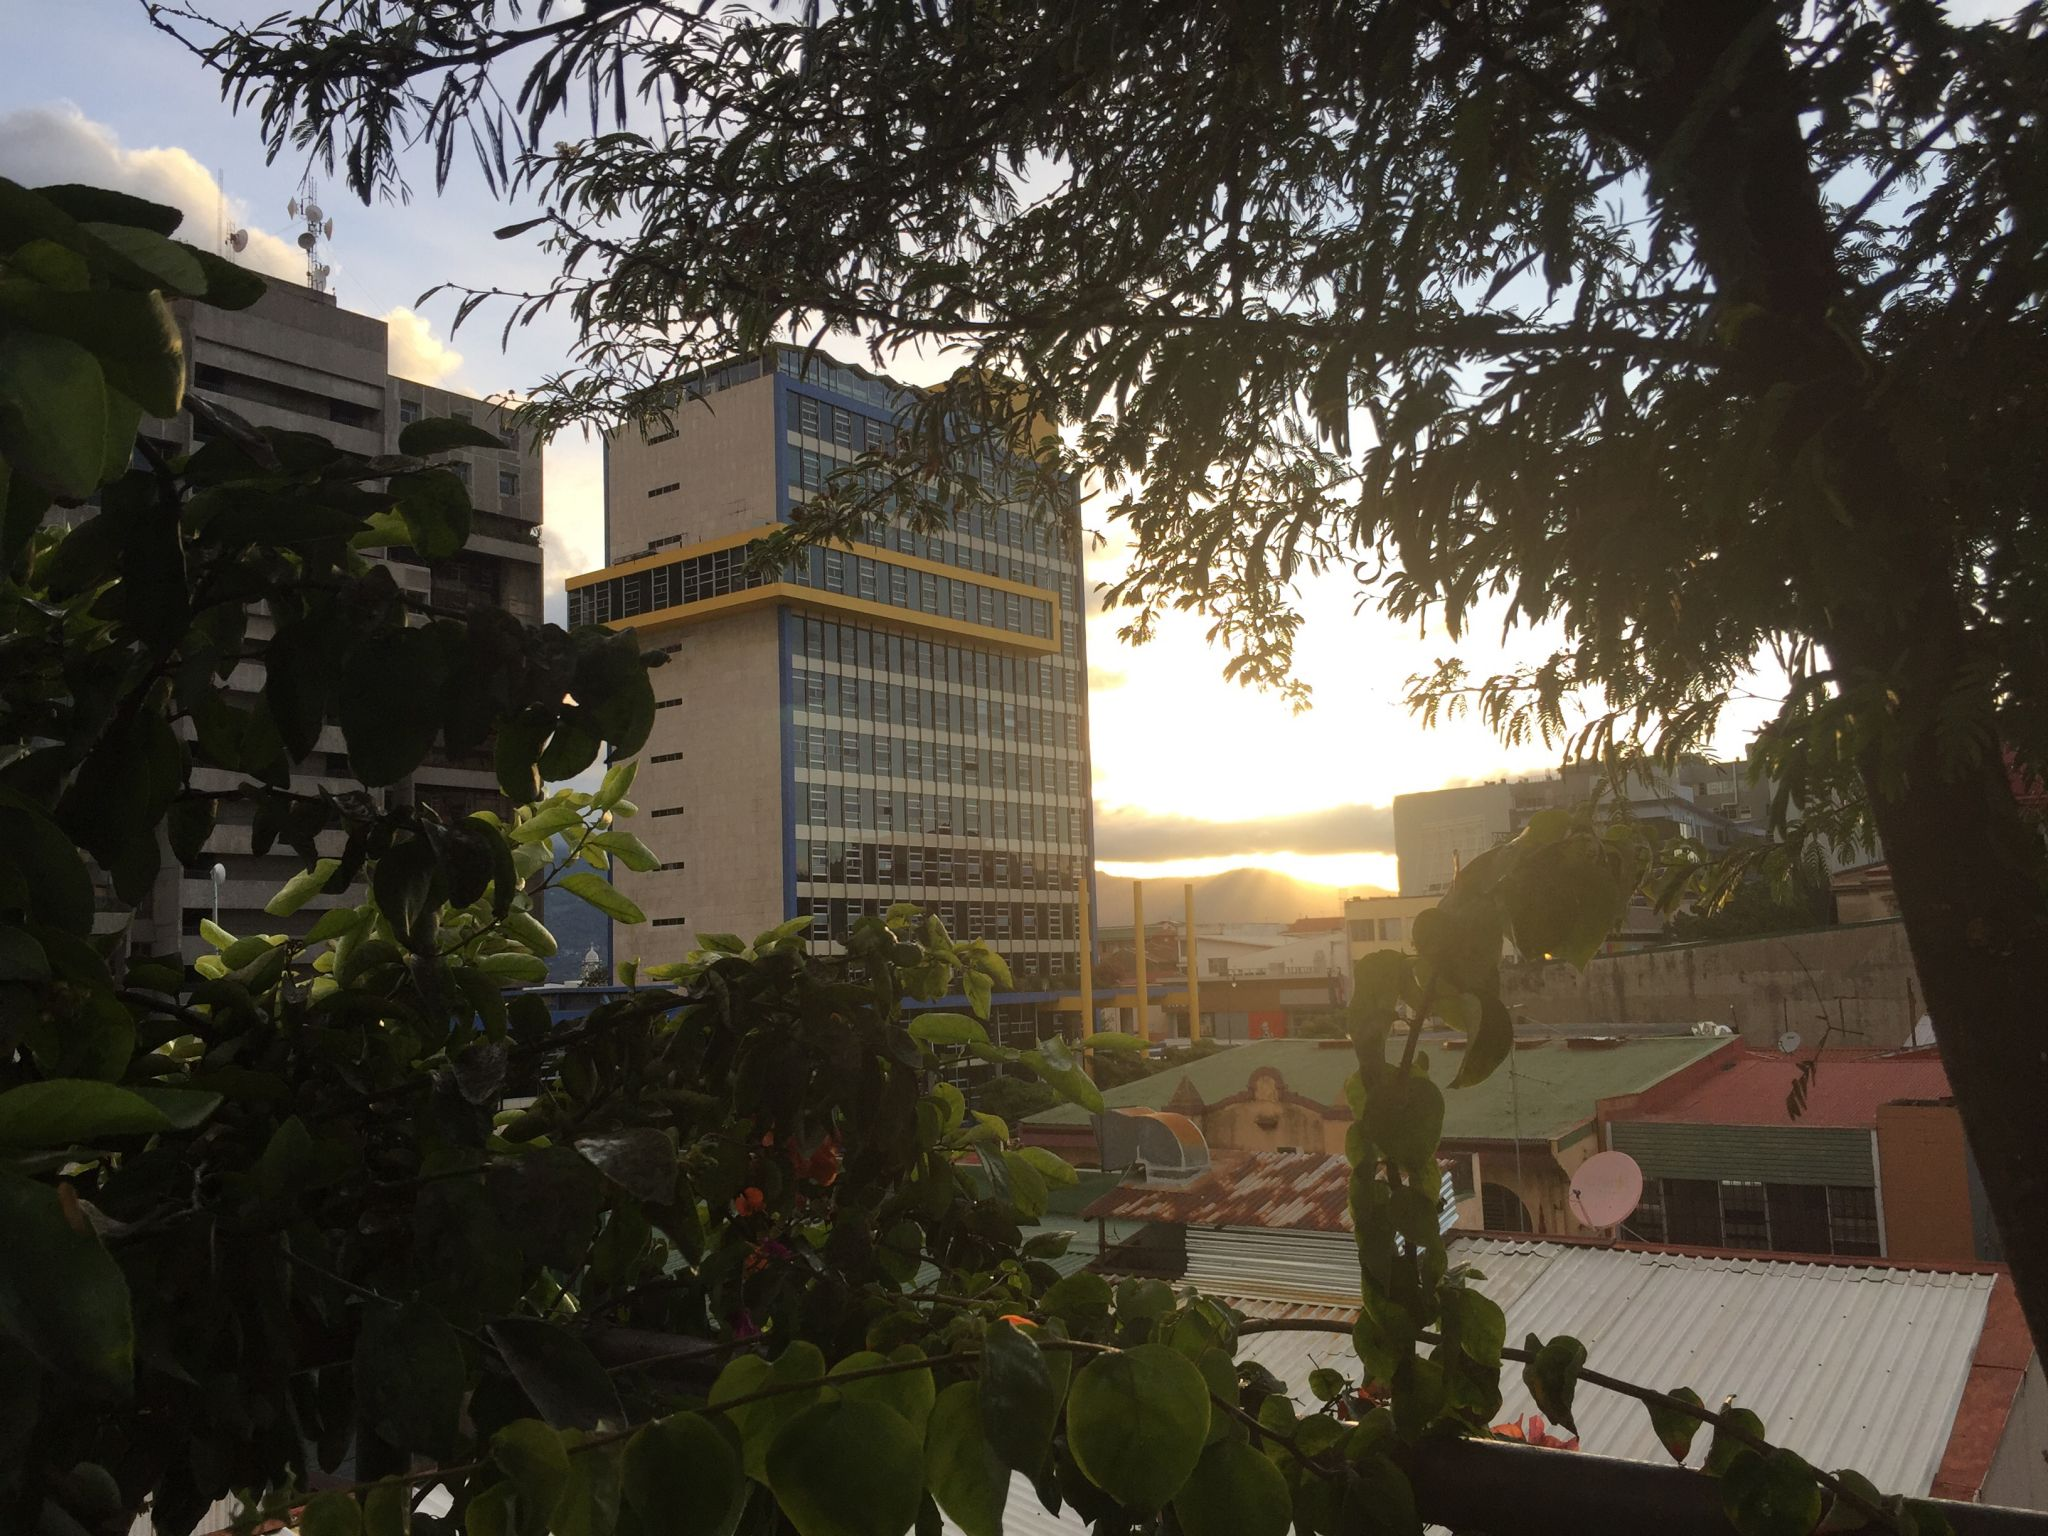 Sunset Rooftop view from the bar at El Presidente. San Jose, Costa Rica